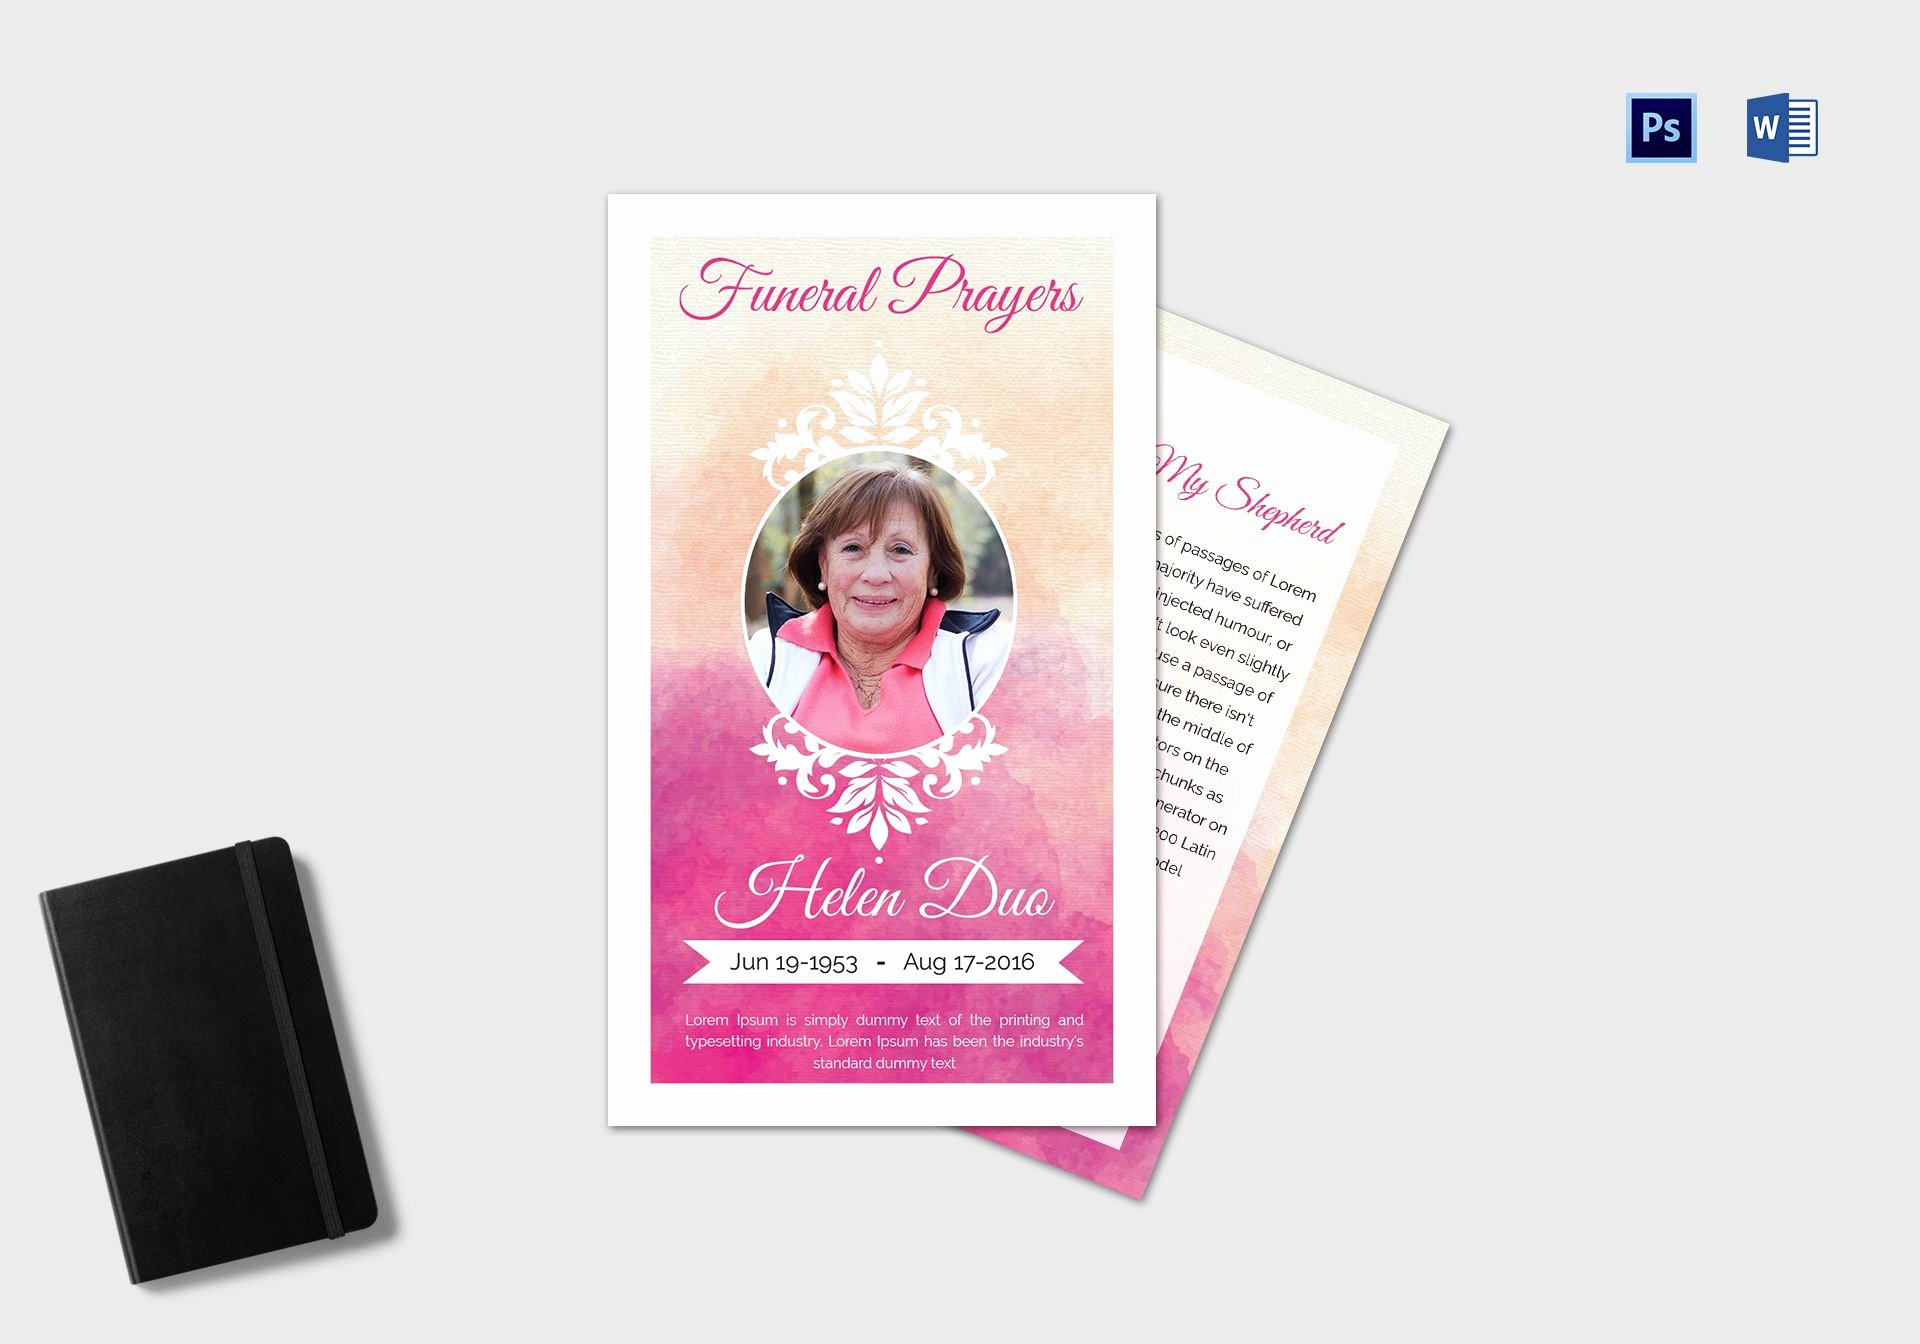 Funeral Prayer Card Template Free Lovely Funeral Prayer Card Template for Grandmother In Adobe